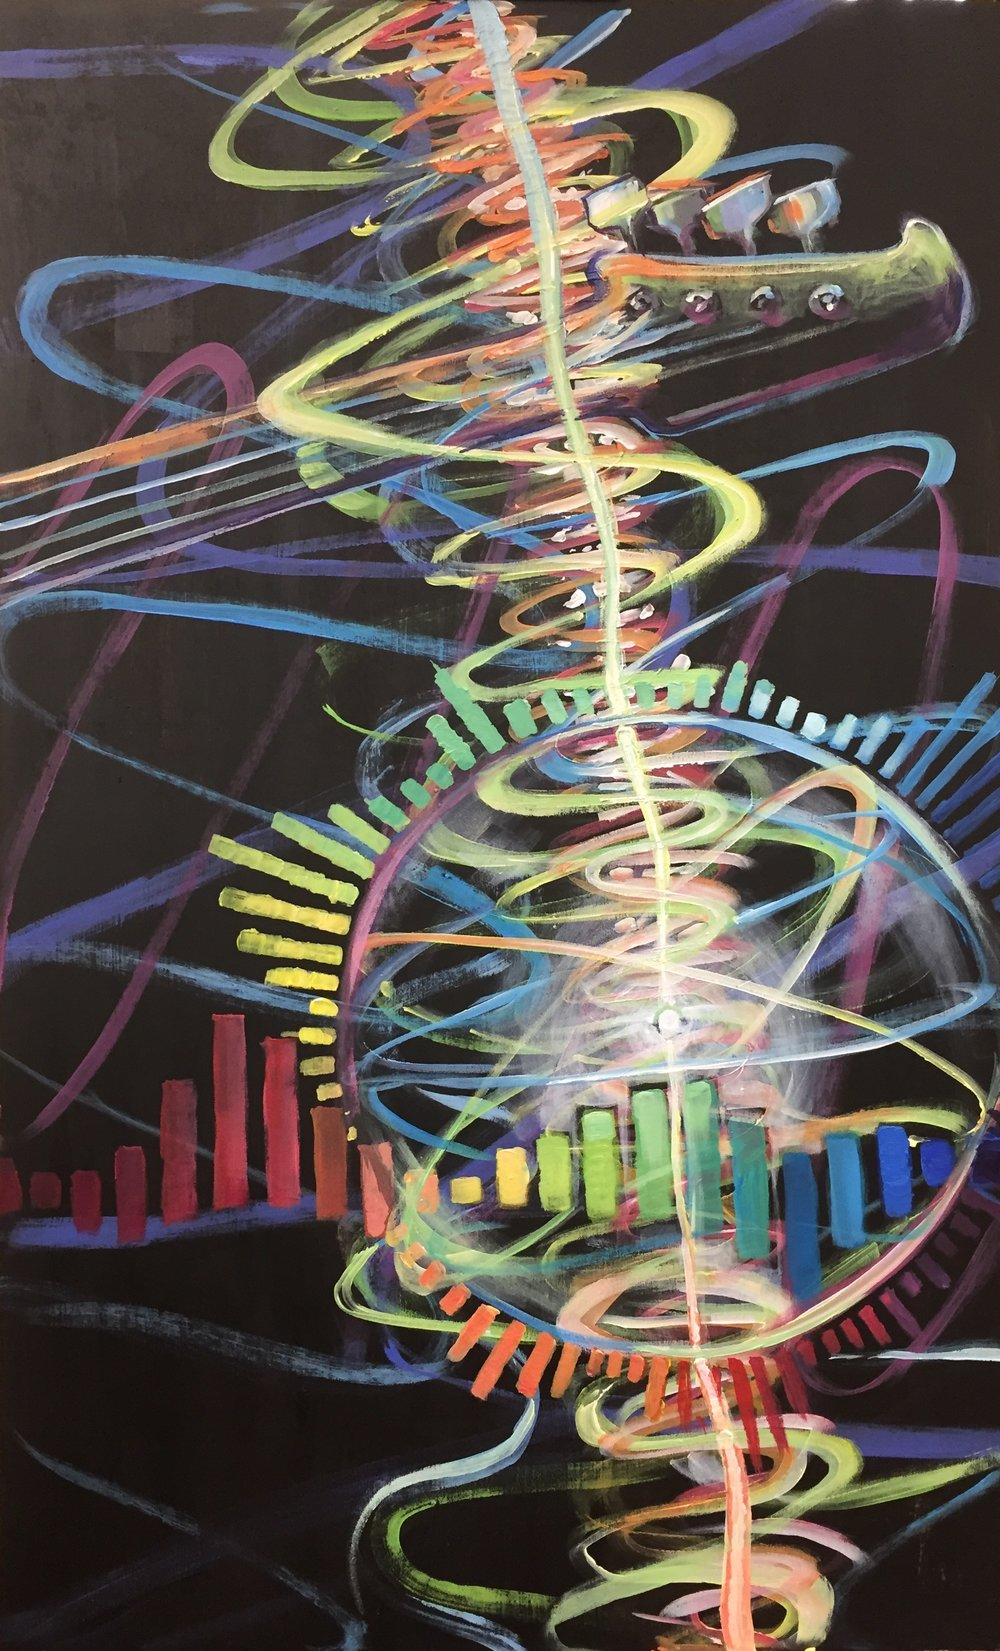 """In Tune"". Painted live at Walnut Hill Community Church, Bethel, CT to the opening sermon series ""Find Your Groove"" by lead pastor Adam DePasquale. December 30, 2018. 32 x 19.75"". Acrylic on wooden Panel.  We all know what it feels like to be in dissonance with the Lord, walking ""out of tune"" with God's Spirit in our daily lives. On the other hand, we hopefully have all experienced moments of deep resonance with the Lord- when everything feels like it is in harmony with God's plan. This painting was created to remind Walnut Hill Community Church to ""Find Your Groove"", and be aware that in each season of our ever-changing lives, we need to perpetually, pliably, and prayerfully tune our hearts to the divine frequency of God's will. Bryn Gillette painted this image live during the opening message of the series at the Bethel campus during the preaching of lead pastor Adam DePasquale. The tuning keys of the bass guitar at the top are a metaphor of our need to adjust our hearts to stay in tune. Waves of sound frequency, color spectrum, and the ""Find Your Groove"" pulsing graphic visualize the changing melodies of life's seasons. The atomic sphere captures a prayerful revelation that took place between Bryn and guest speaker Jameson Parker: May God's frequency so permeate our lives through prayer that we vibrate with His very purposes in every pore, every cell of our body, every atomic particle in tune with the divine resonance."